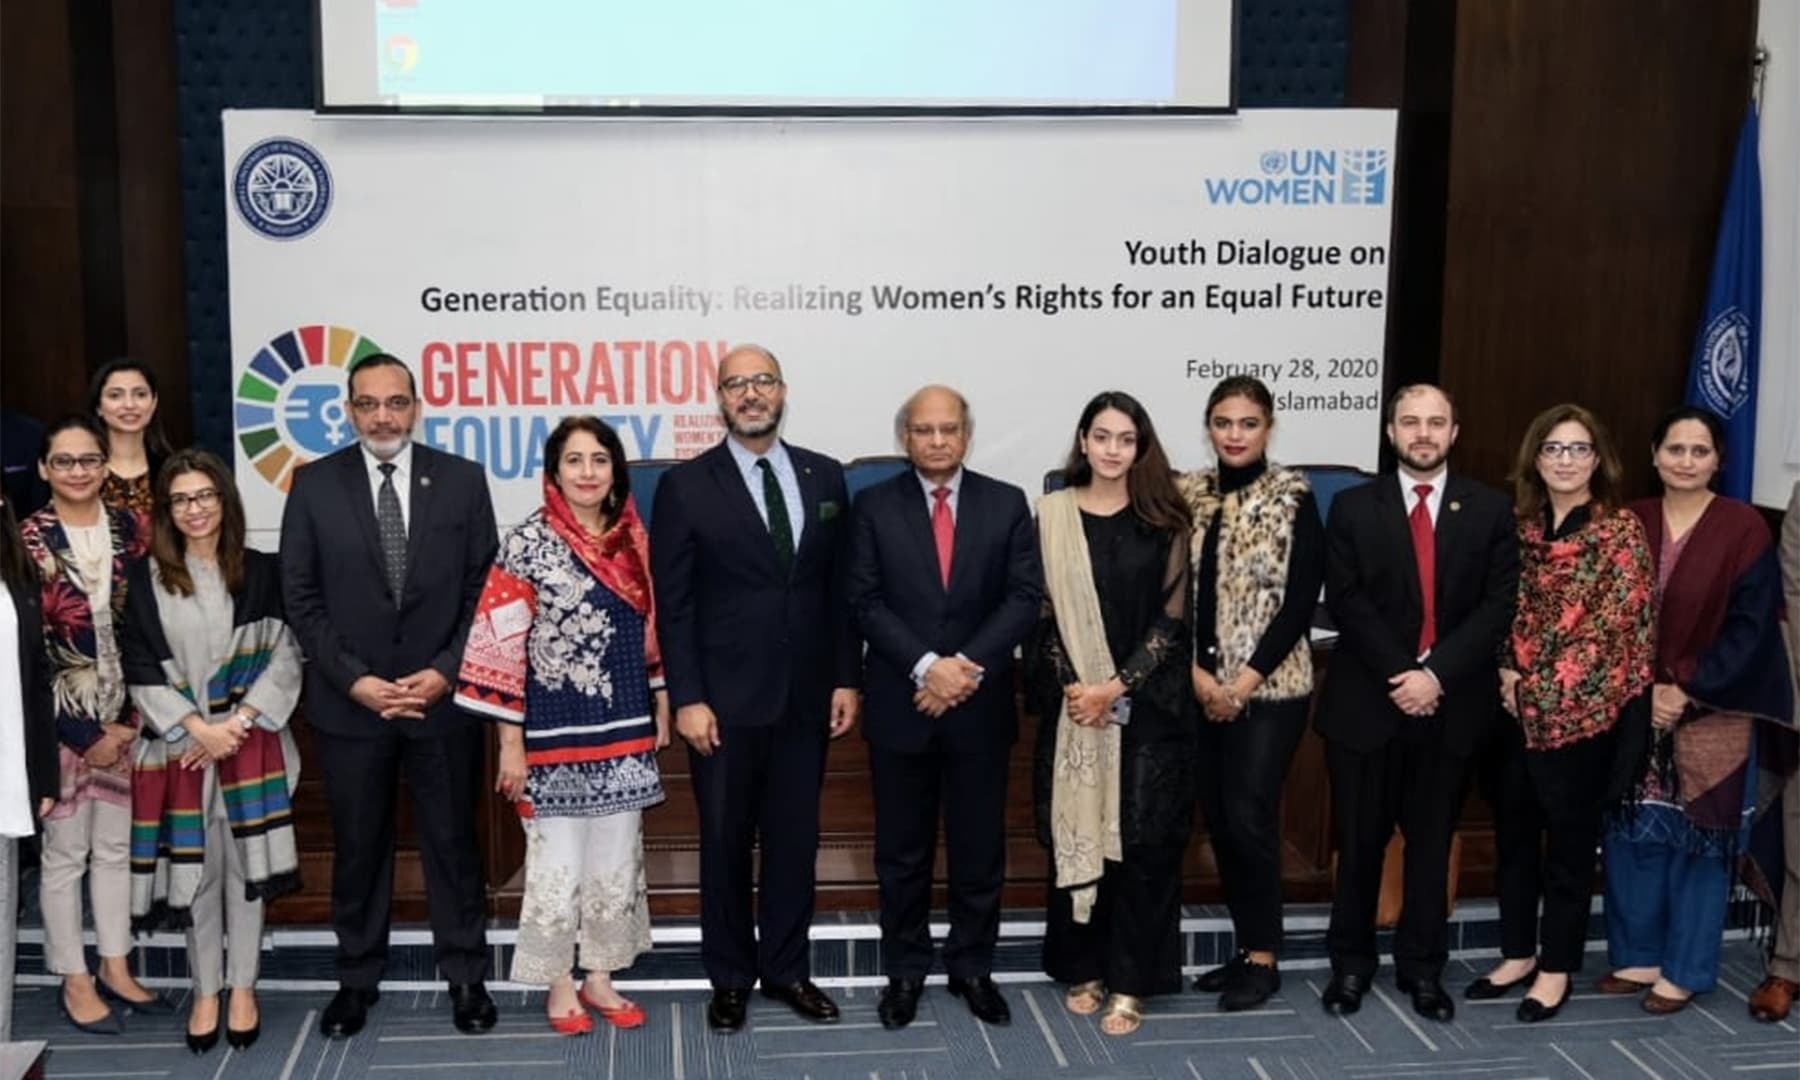 The event commemorated the 25th anniversary of the Beijing Declaration and Platform for Action which was ratified in 1995 and endorsed by 189 governments at the fourth World Conference on Women in China. — Photo courtesy UN Women